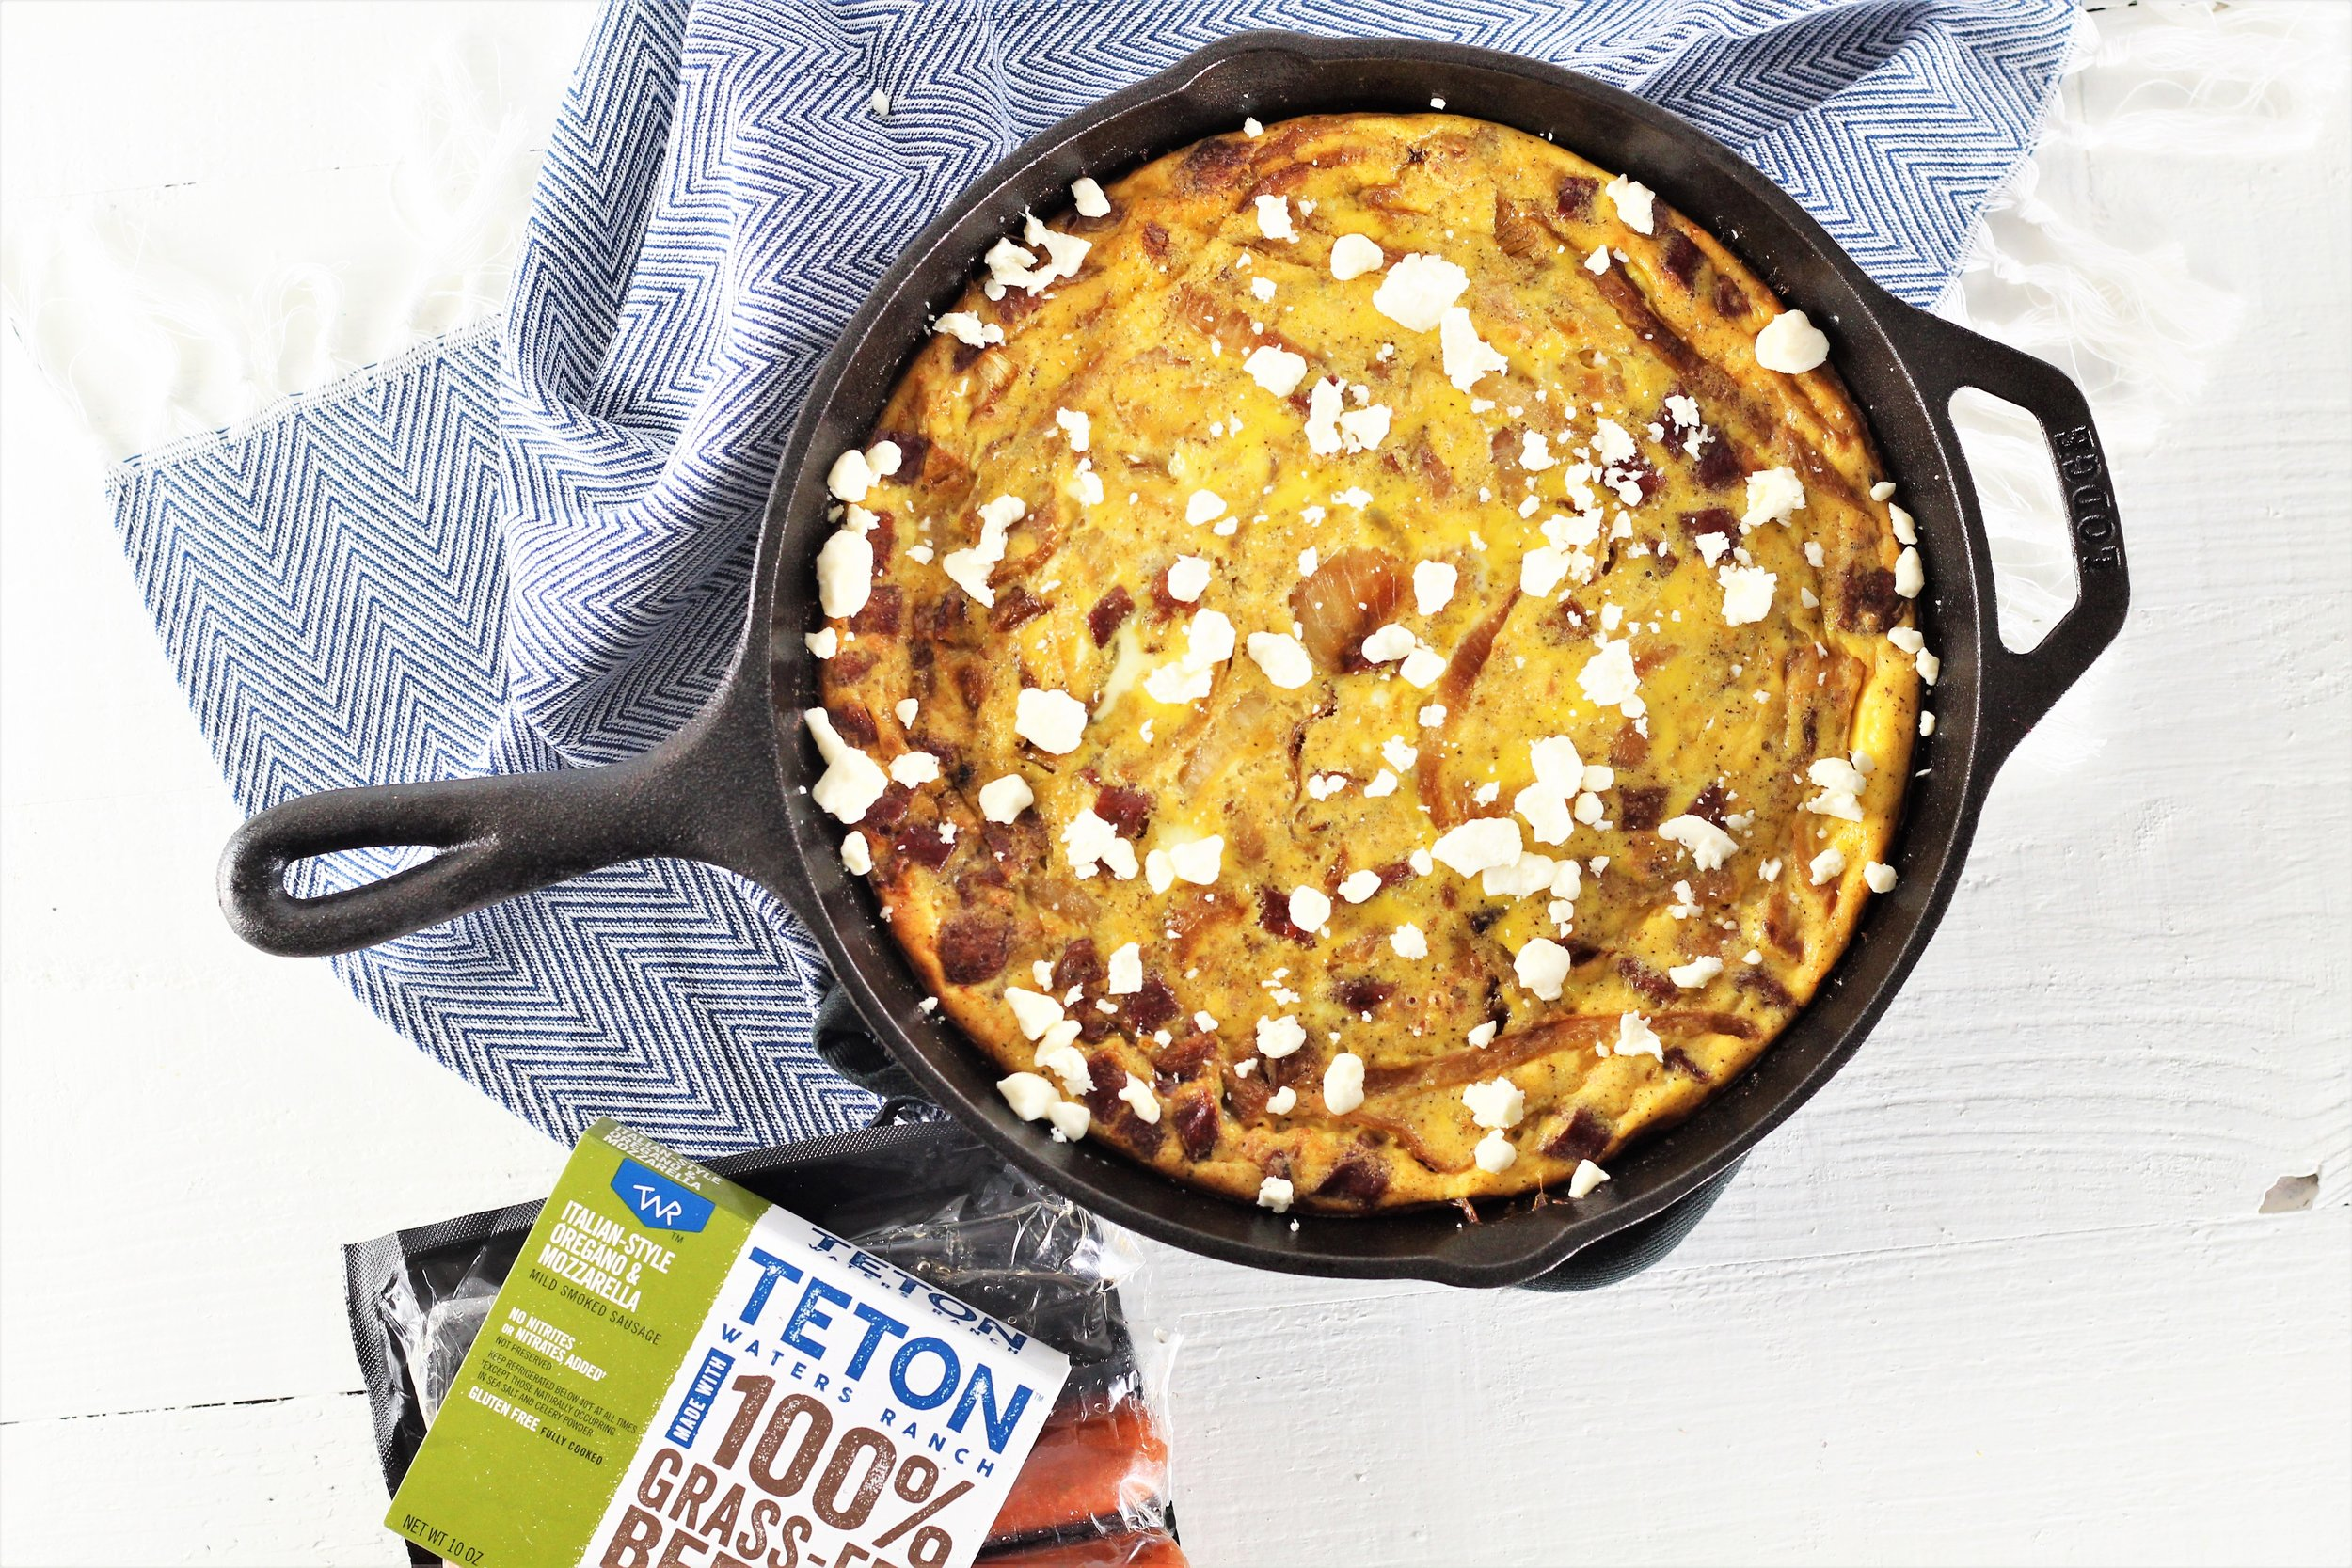 Crustless Caramelized Onion and Sausage Quiche